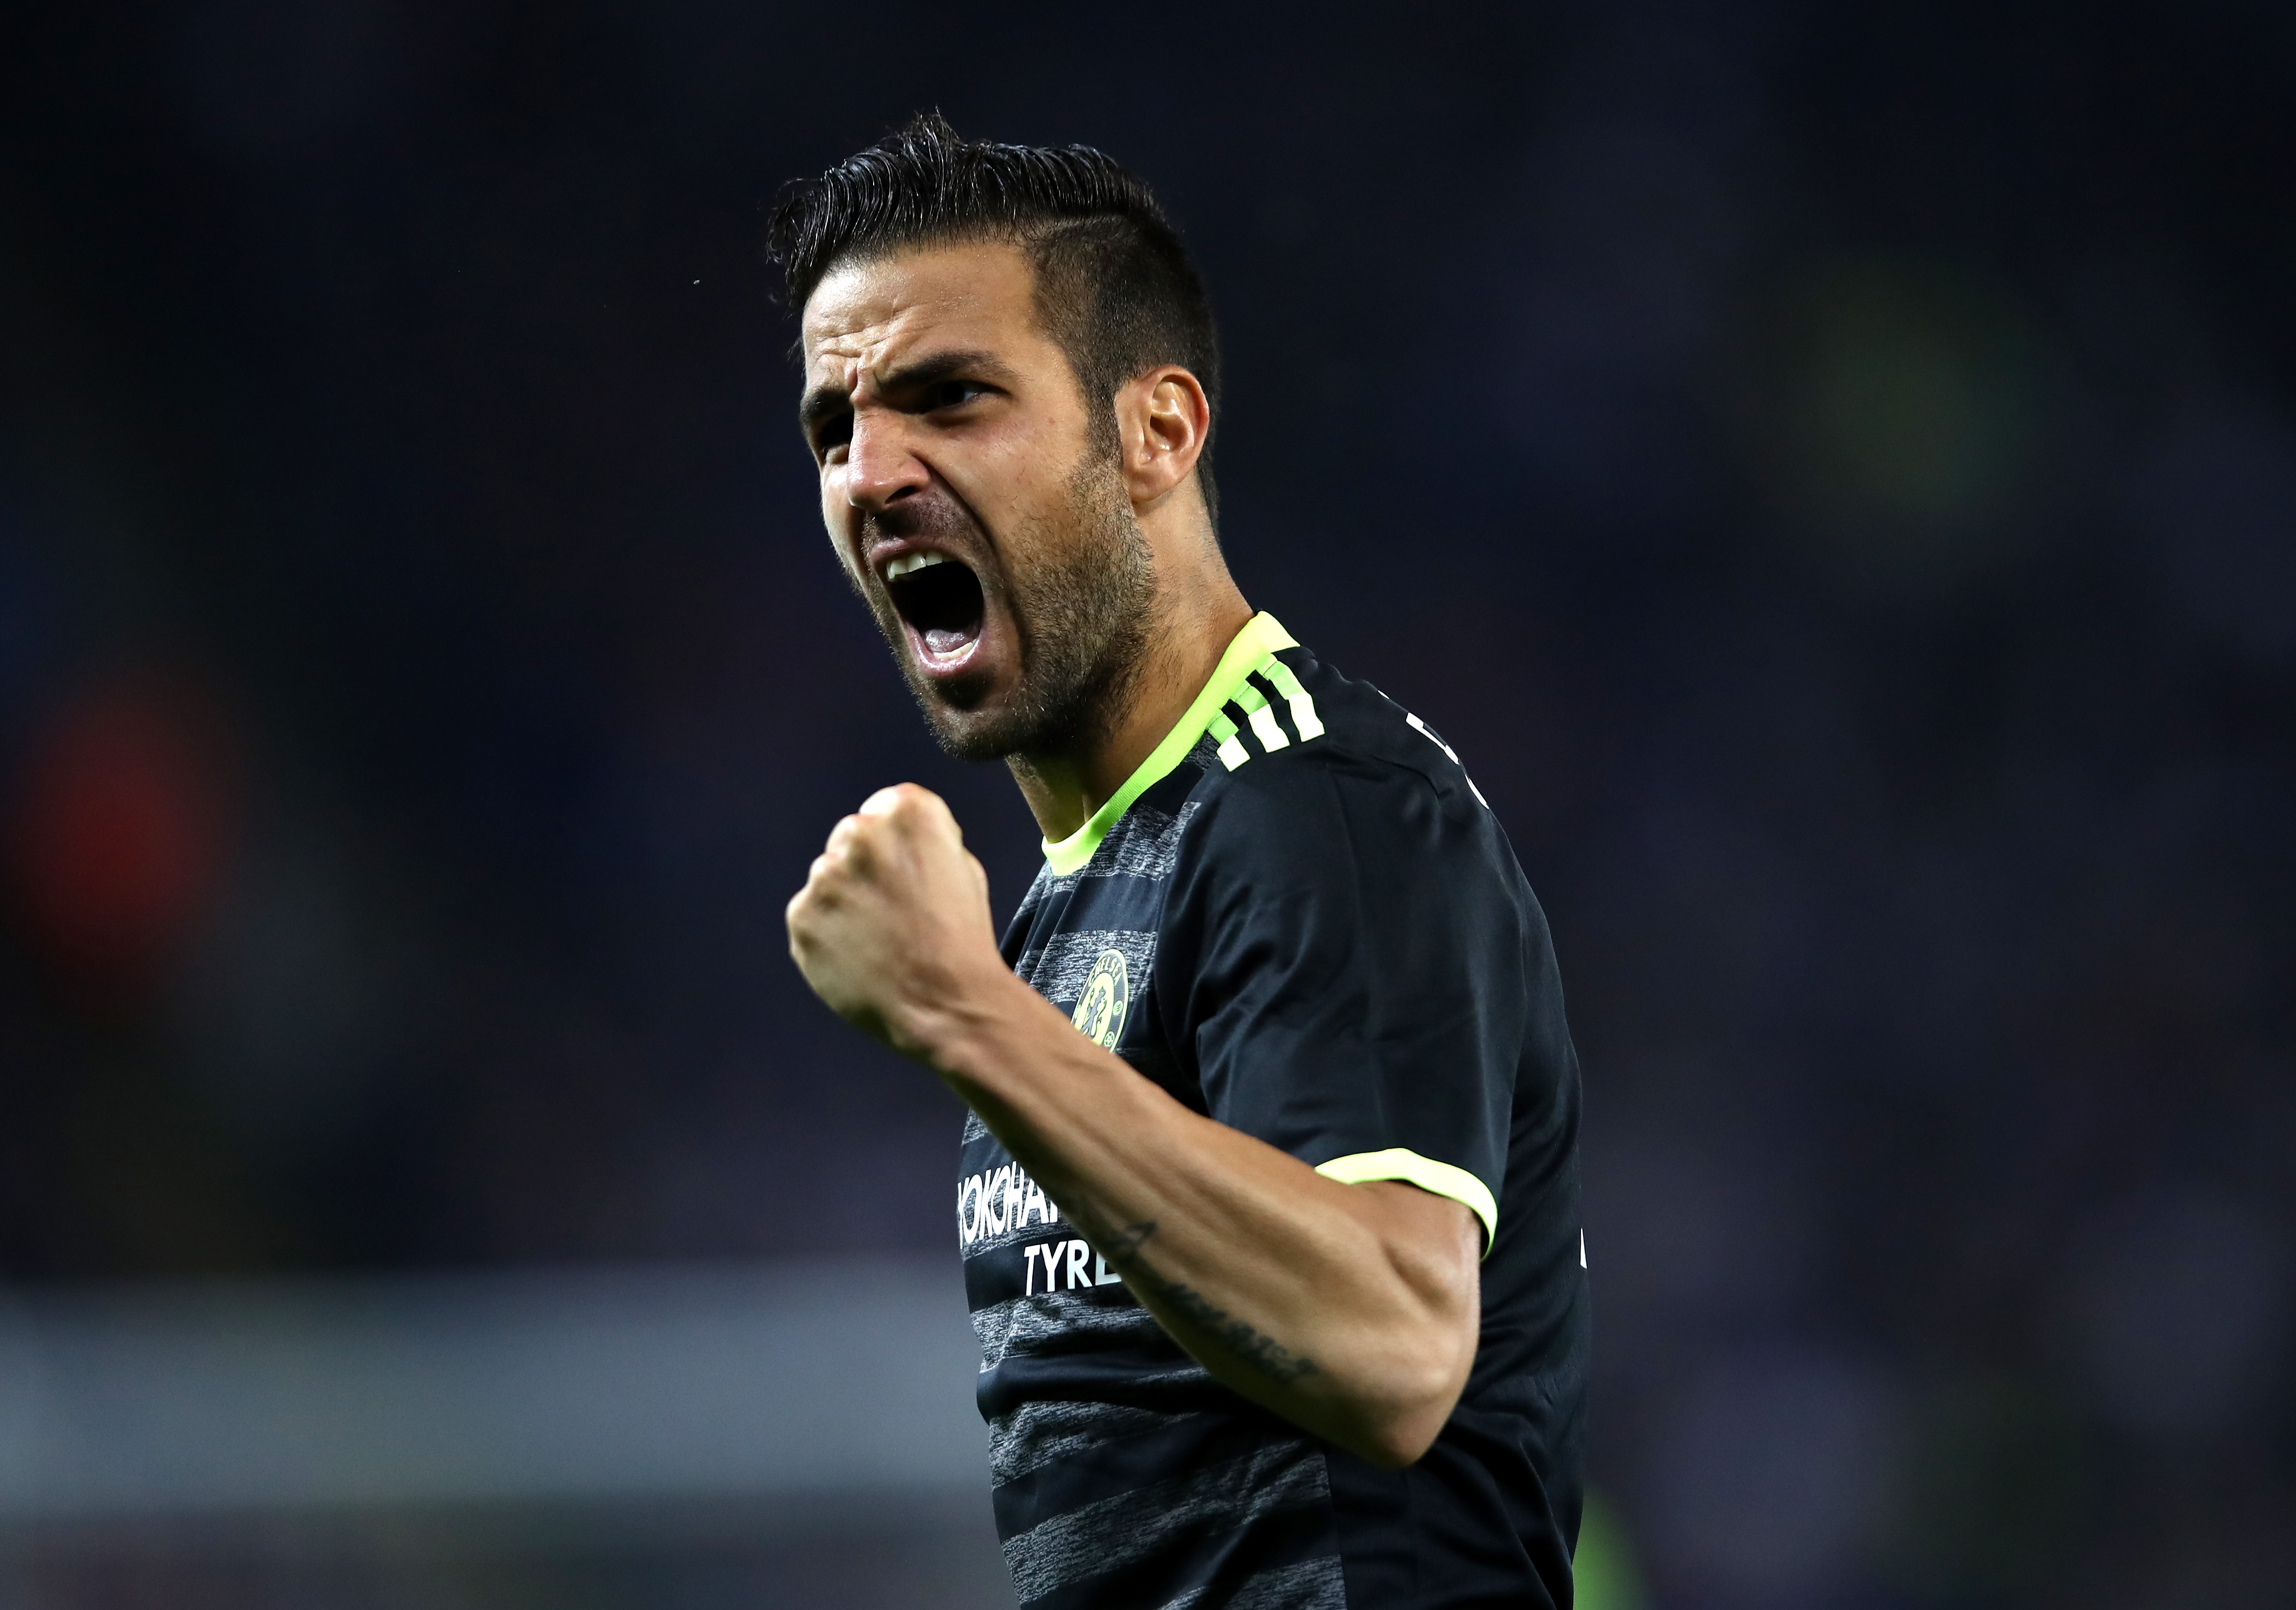 Chelsea's Cesc Fabregas continues offensive form in post-game interview